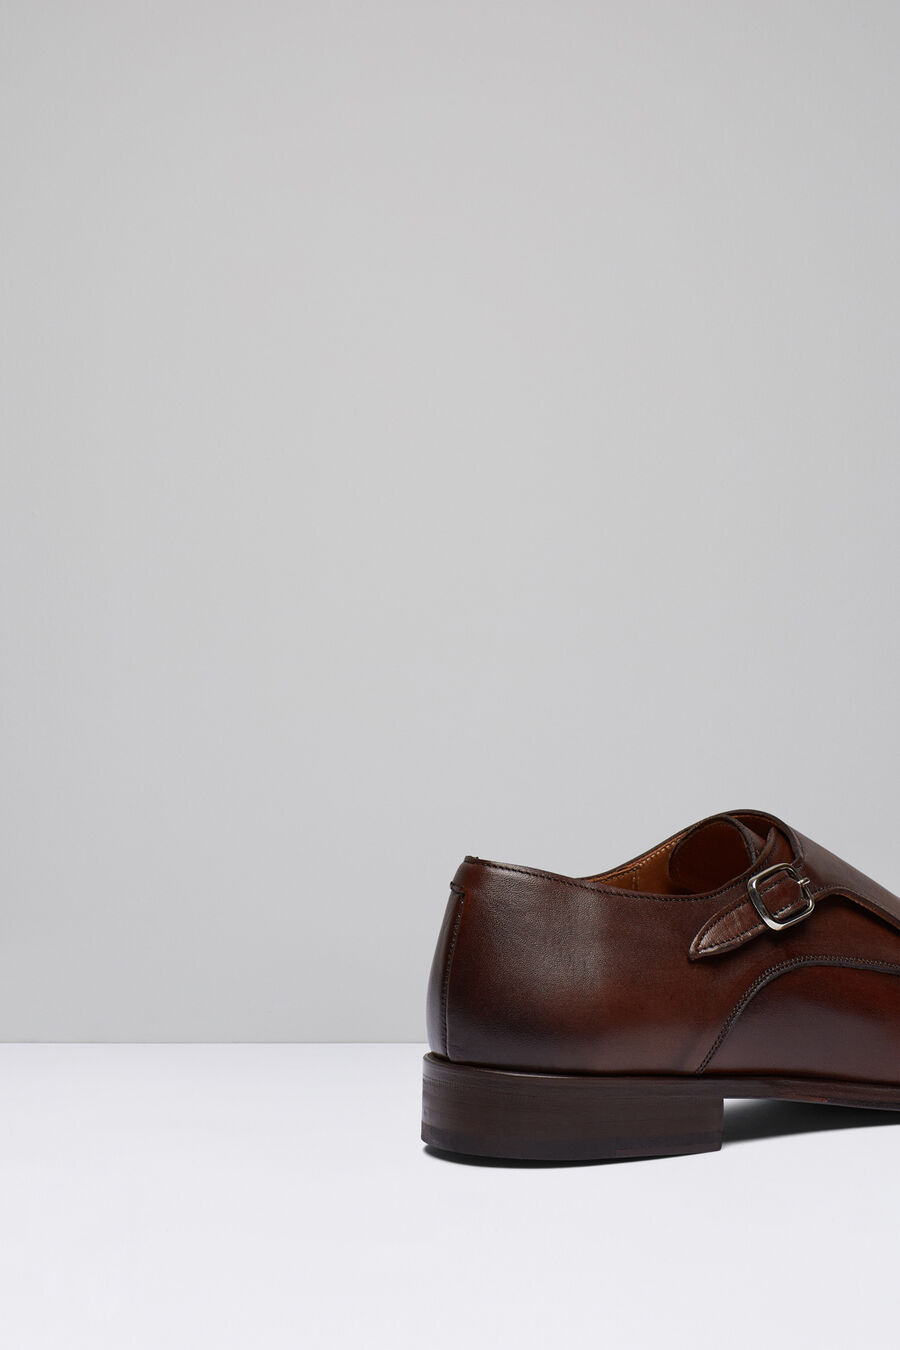 2 buckle leather shoes